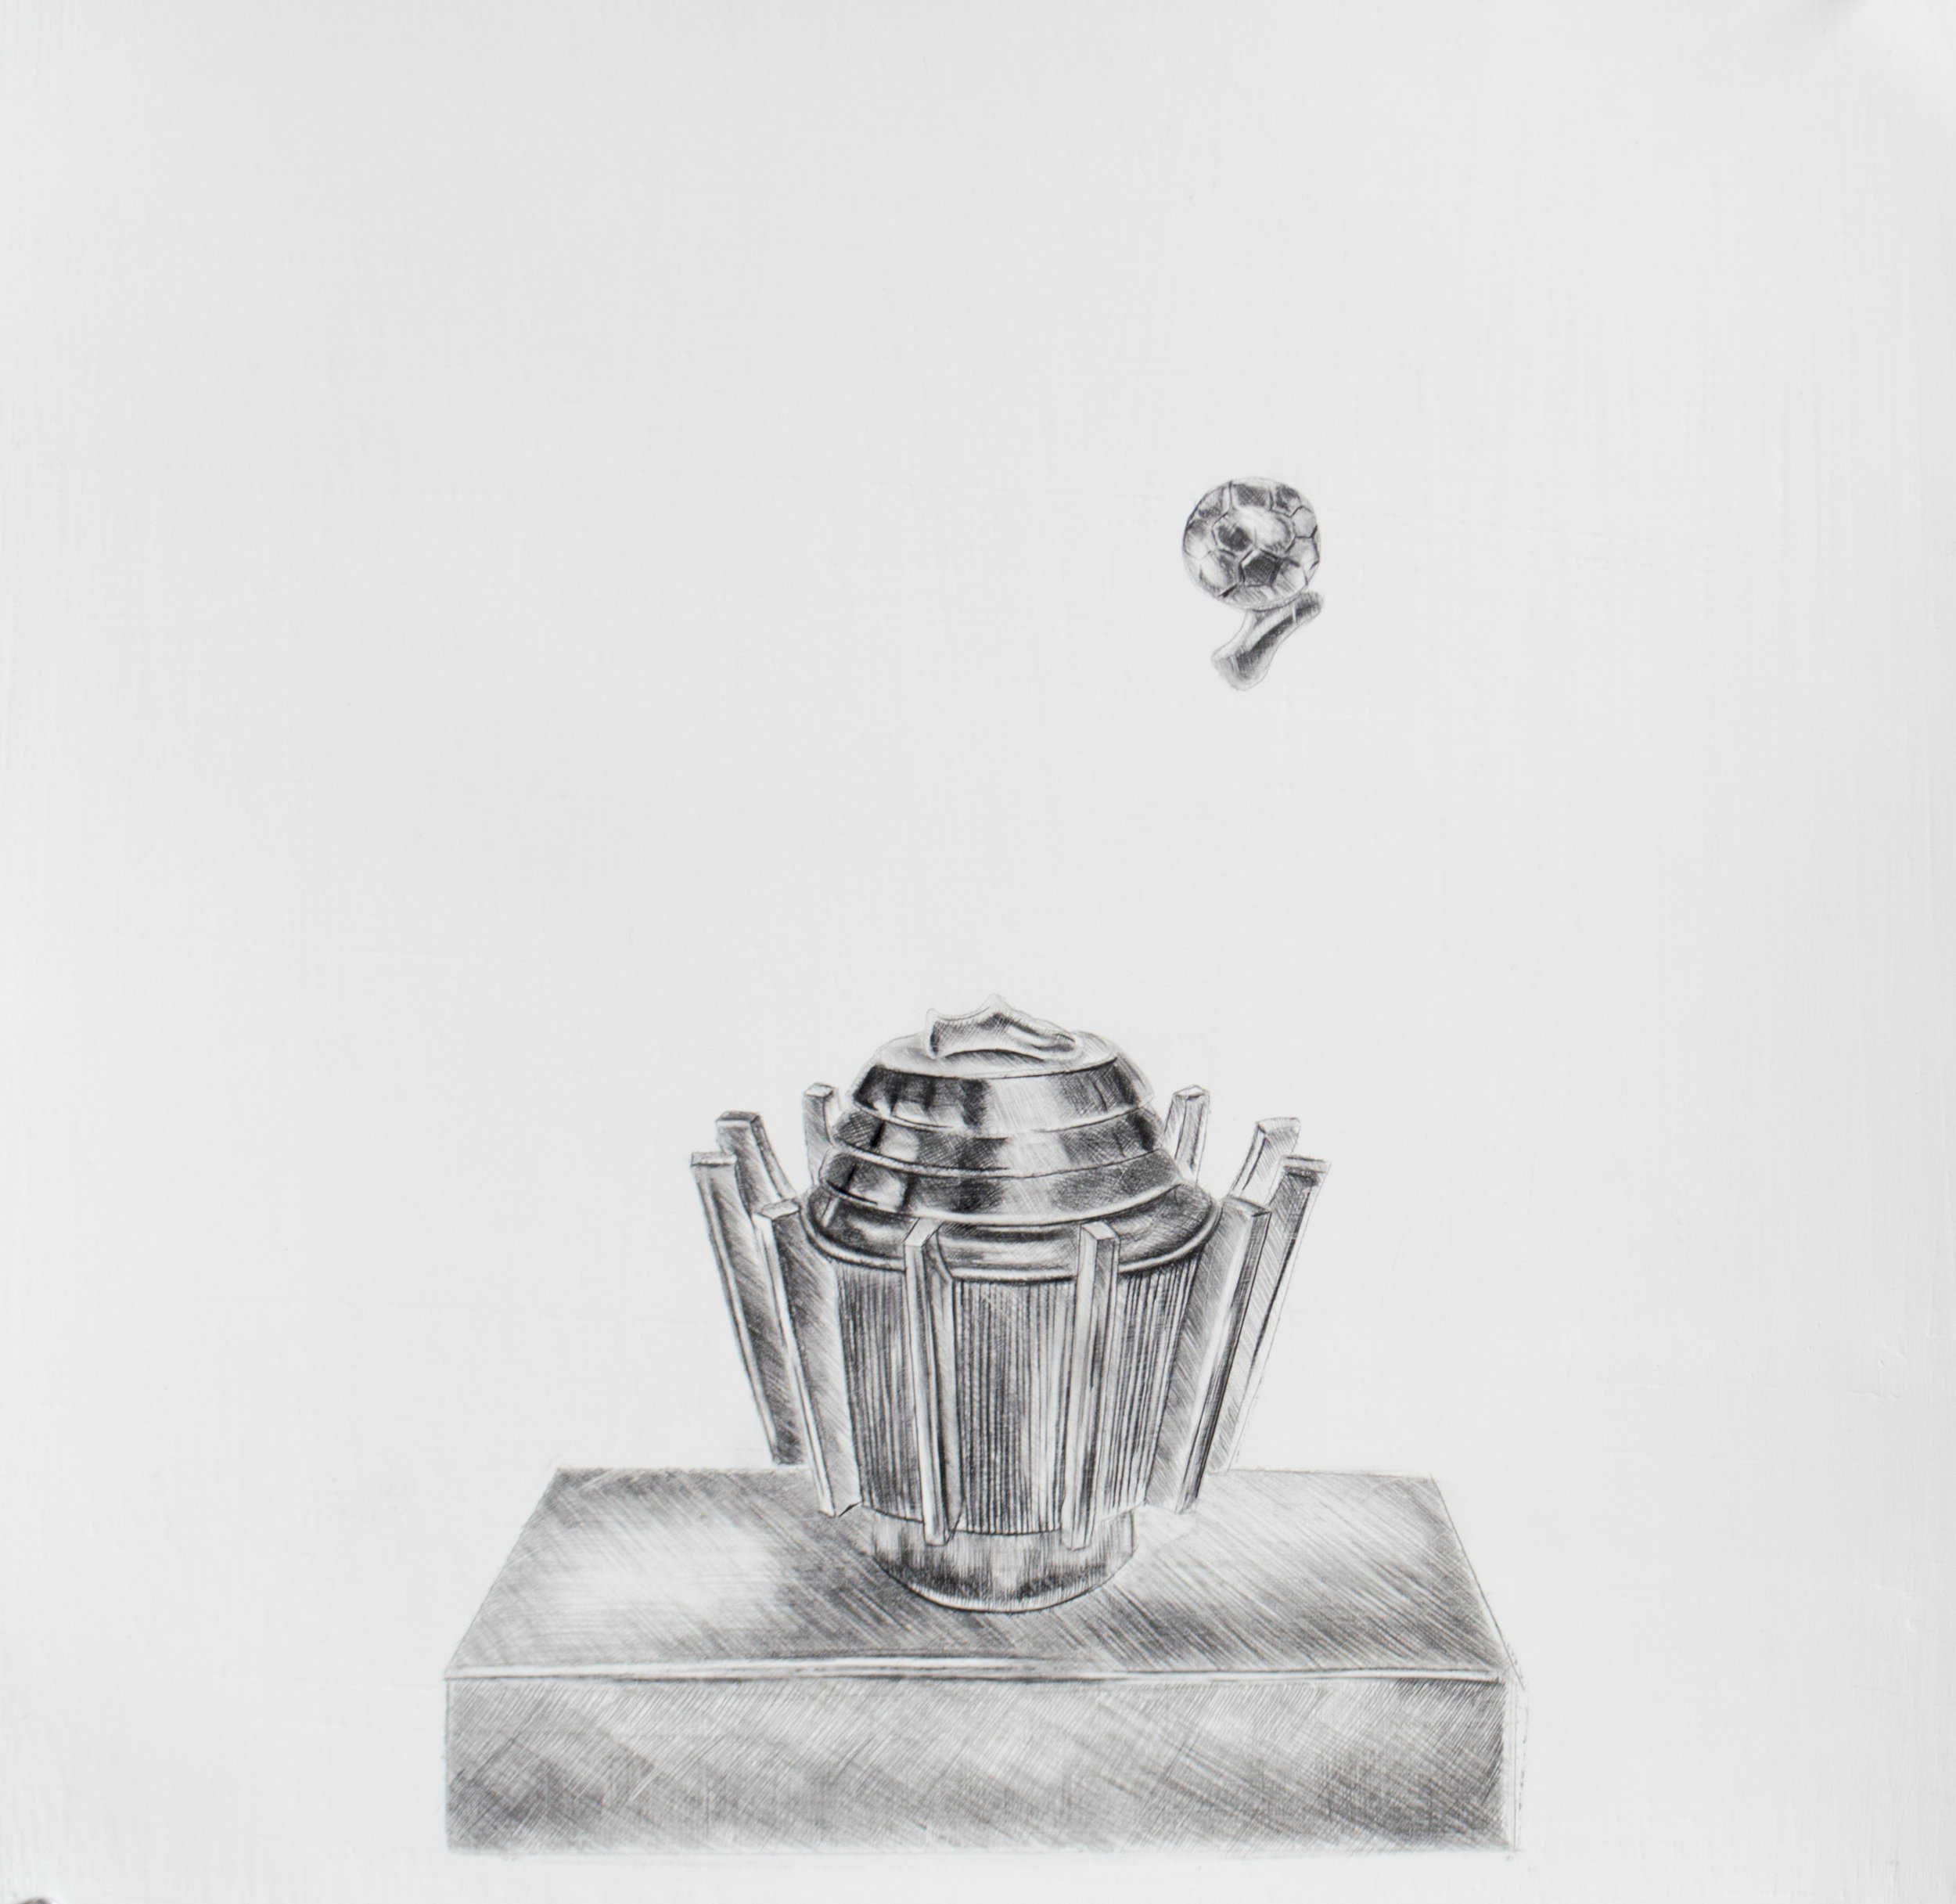 The most successful people reach the top not because they are free of limitations, but because they act in spite of their limitations, 13.5 x 13.5 inches, Silverpoint and graphite on prepared paper. 2019